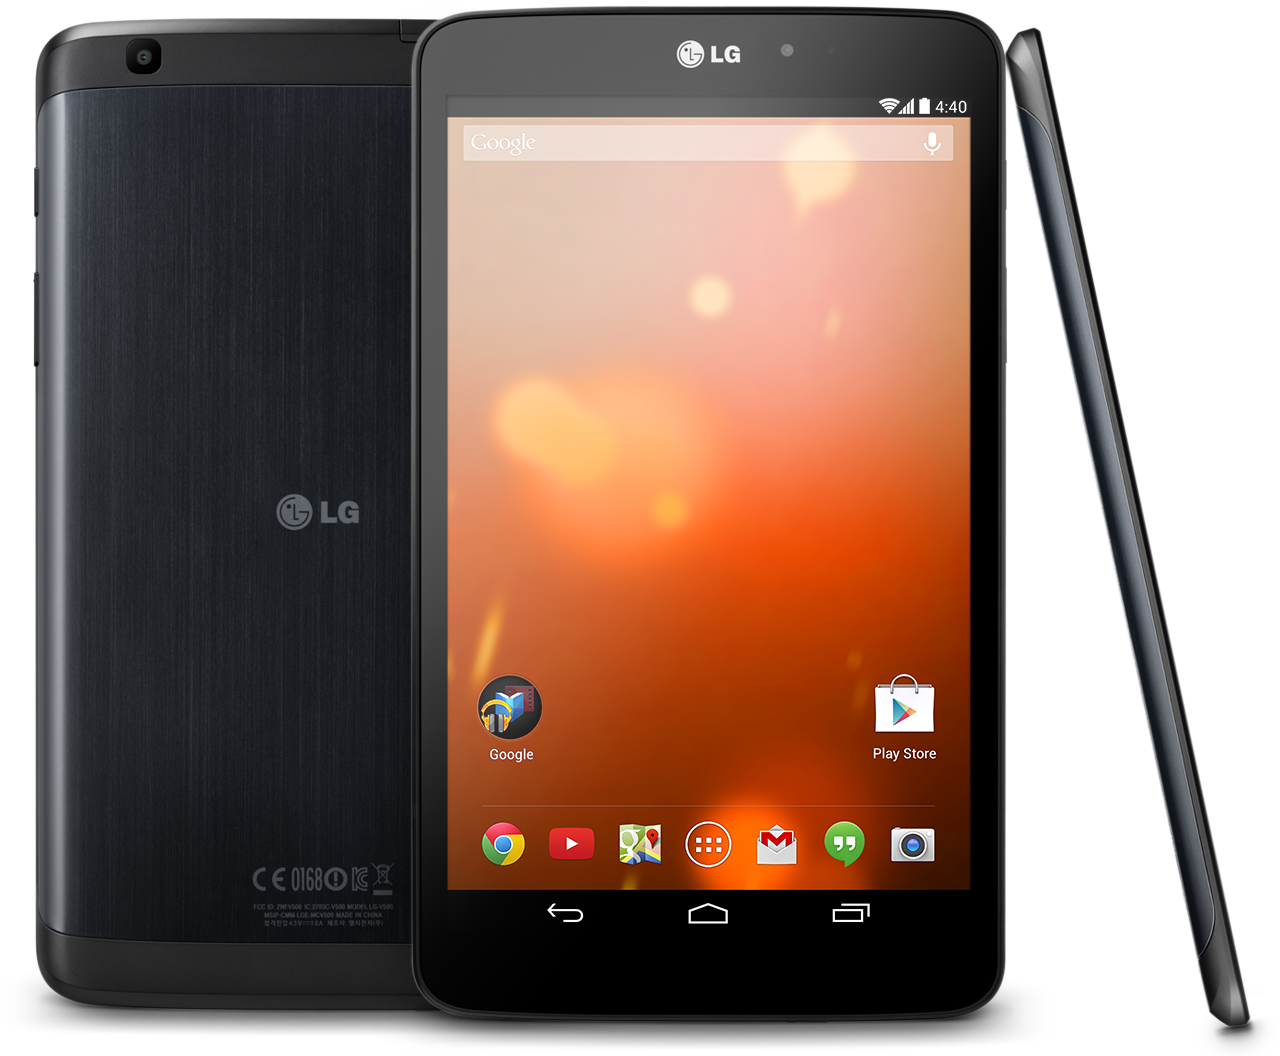 LG G Pad 7 Price Release Date 2014 - Technology